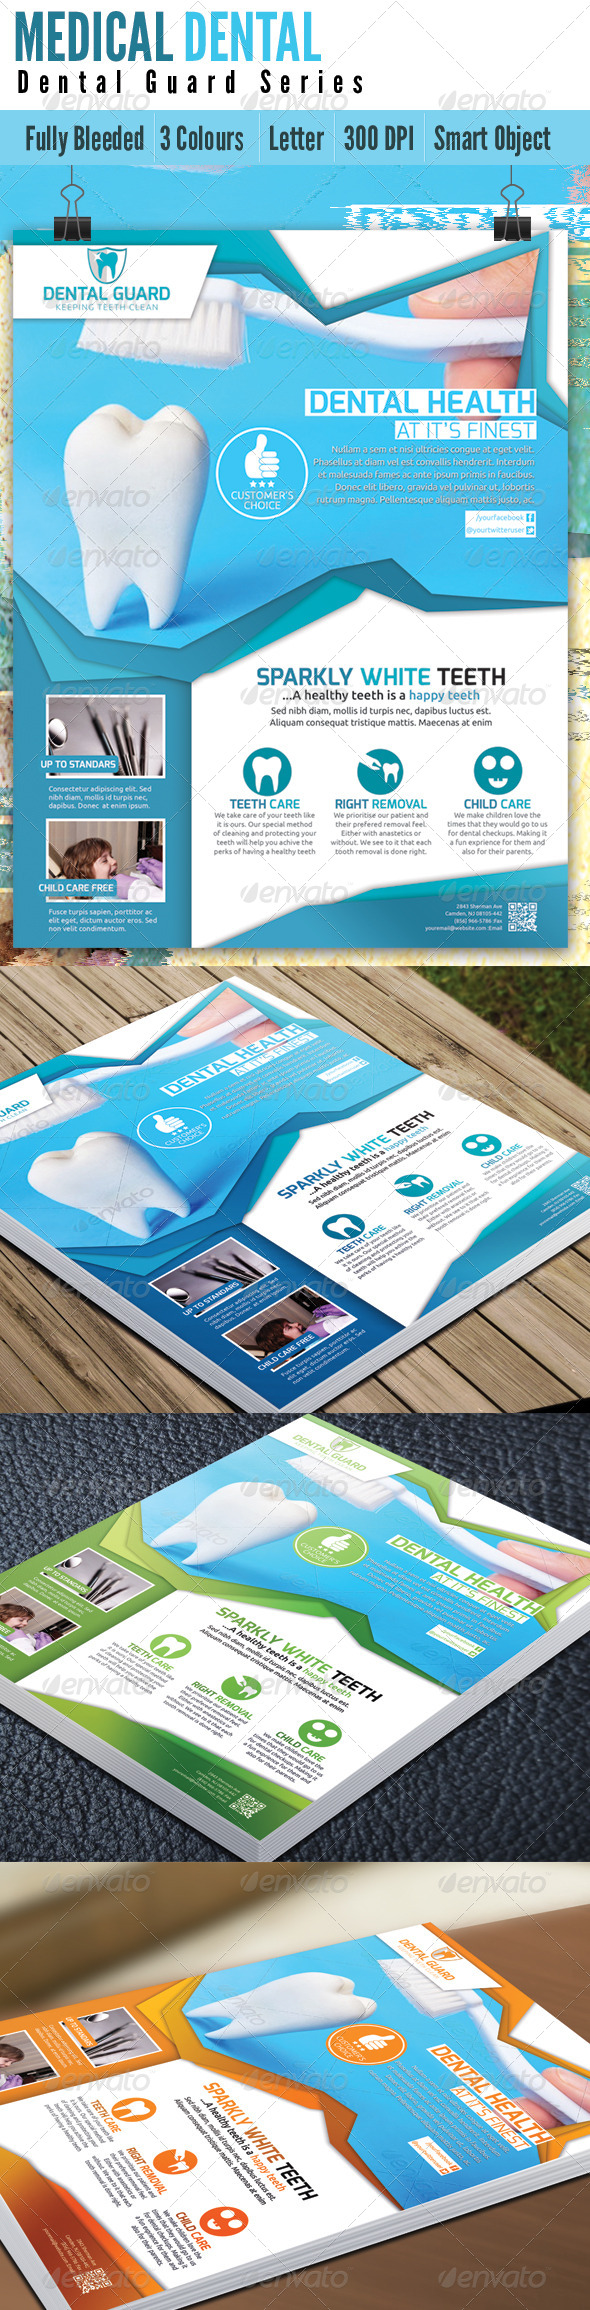 GraphicRiver Medical Dental Flyer V2 4936189